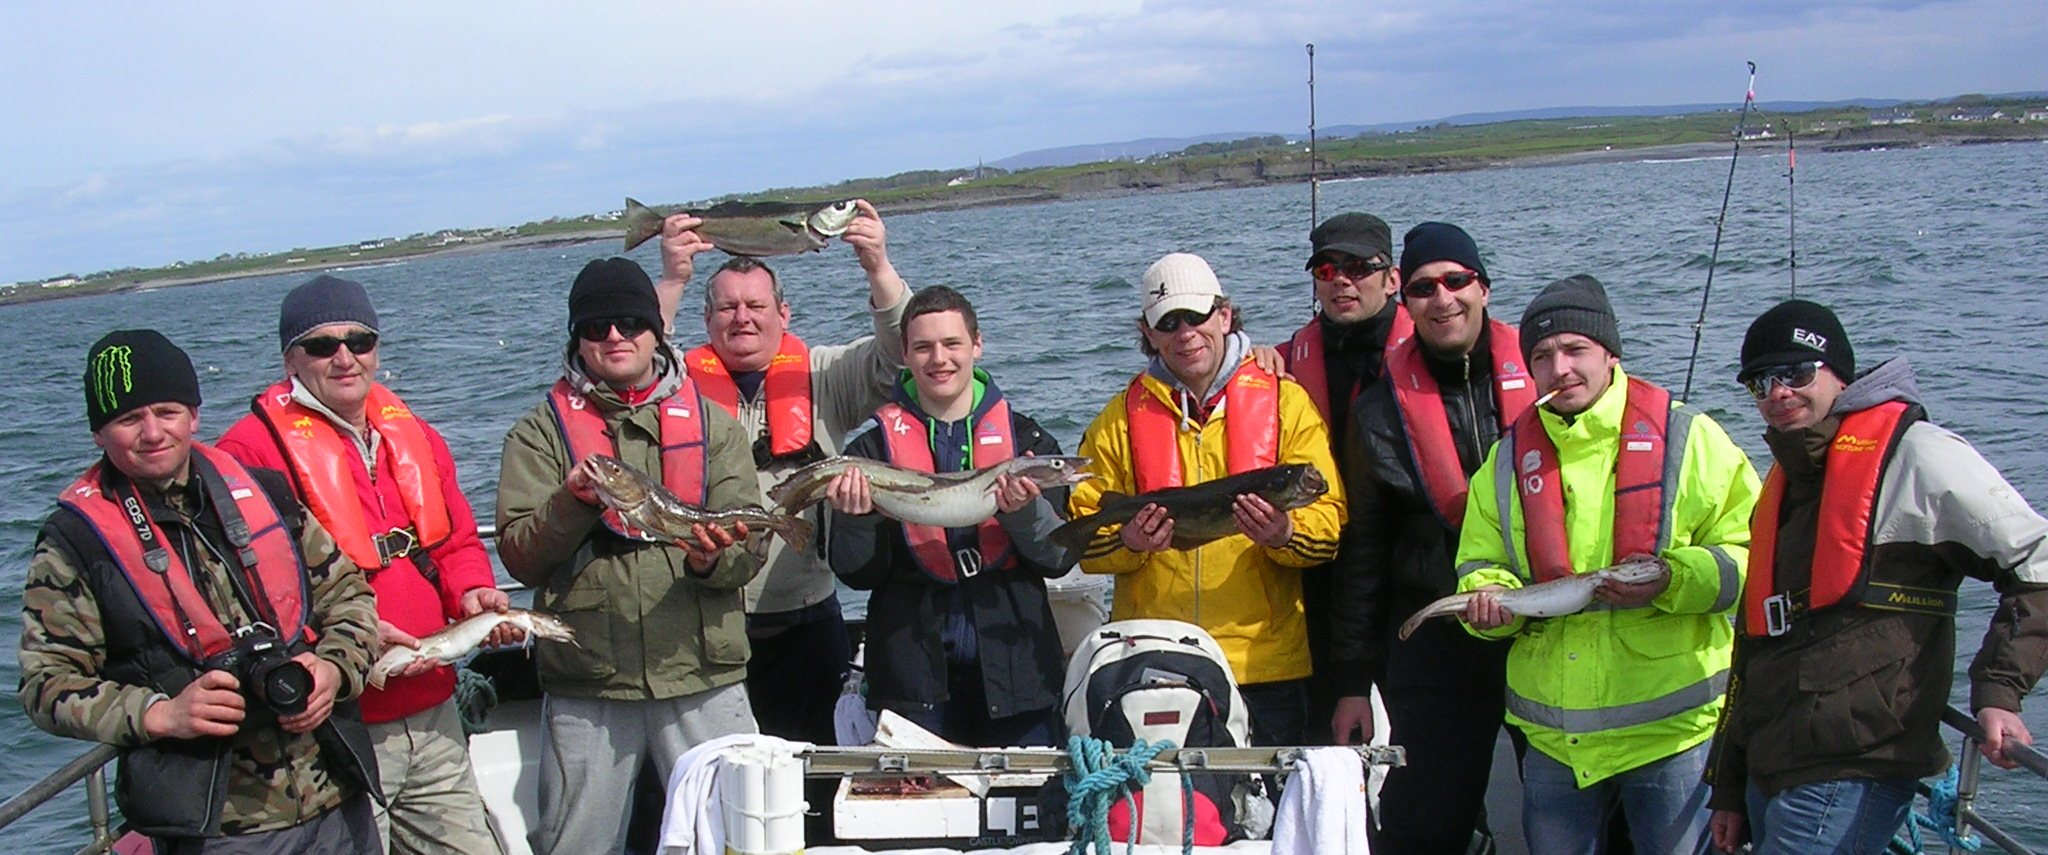 Party_of_Anglers_on_board_the_Leah_Sunday_6th_May.JPG